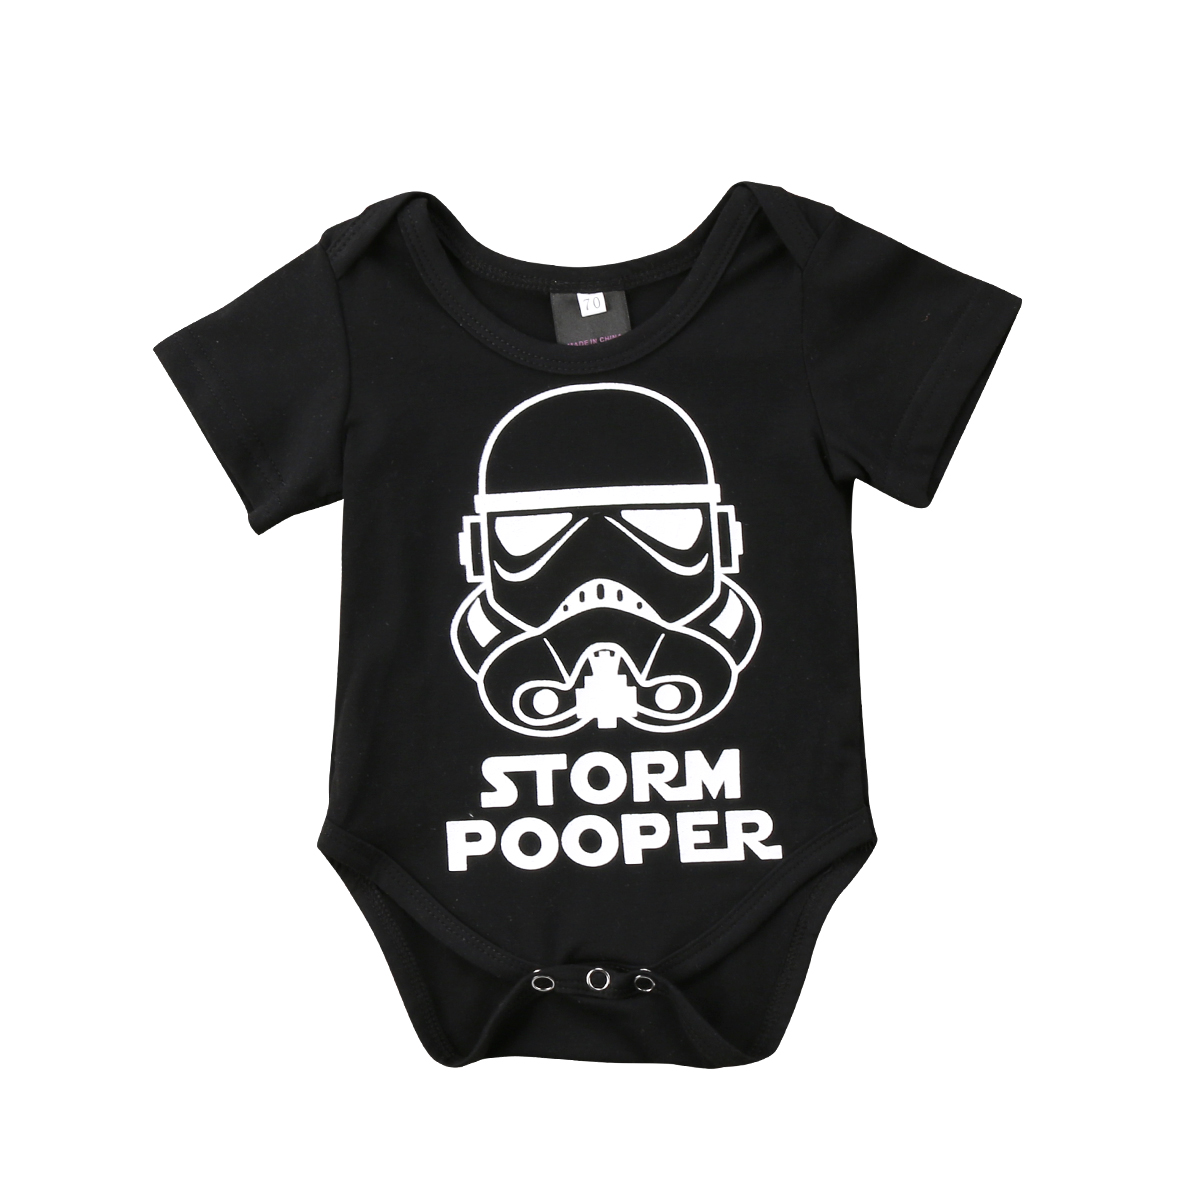 Baby Clothes Newborn 0-18Months Hot Cartoon Infant Baby Boy Girl Bodysuit Jumpsuit Clothes Outfits Size 0-18M